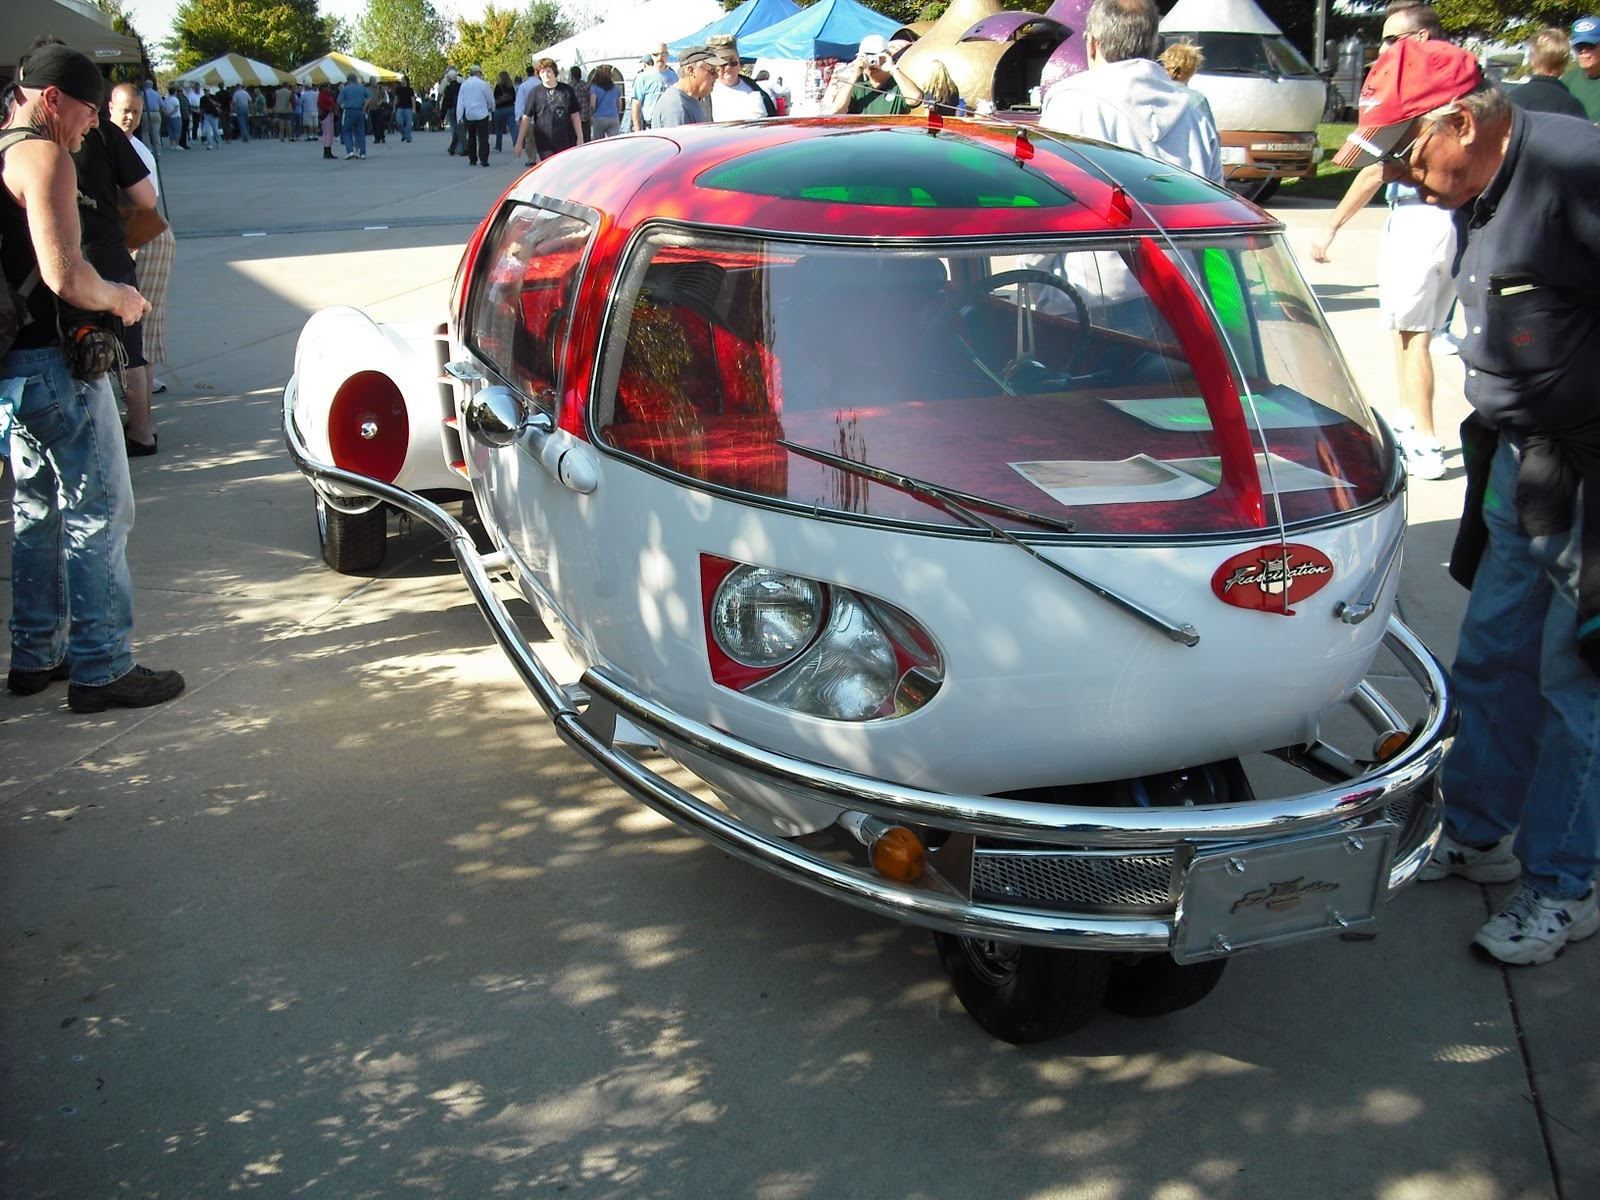 Hershey Porsche Swap Meet 2018 >> Auto Swap Meets In Phoenix | Autos Post